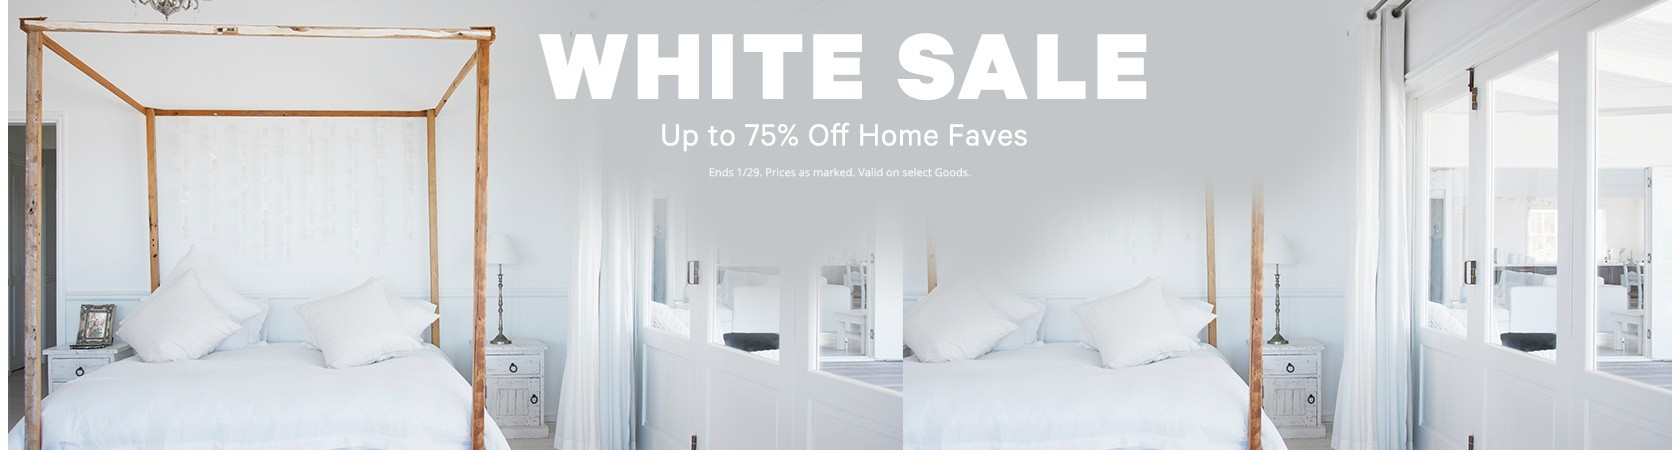 Bargain - Up to 75% OFF - White Sale Home Faves | Groupon